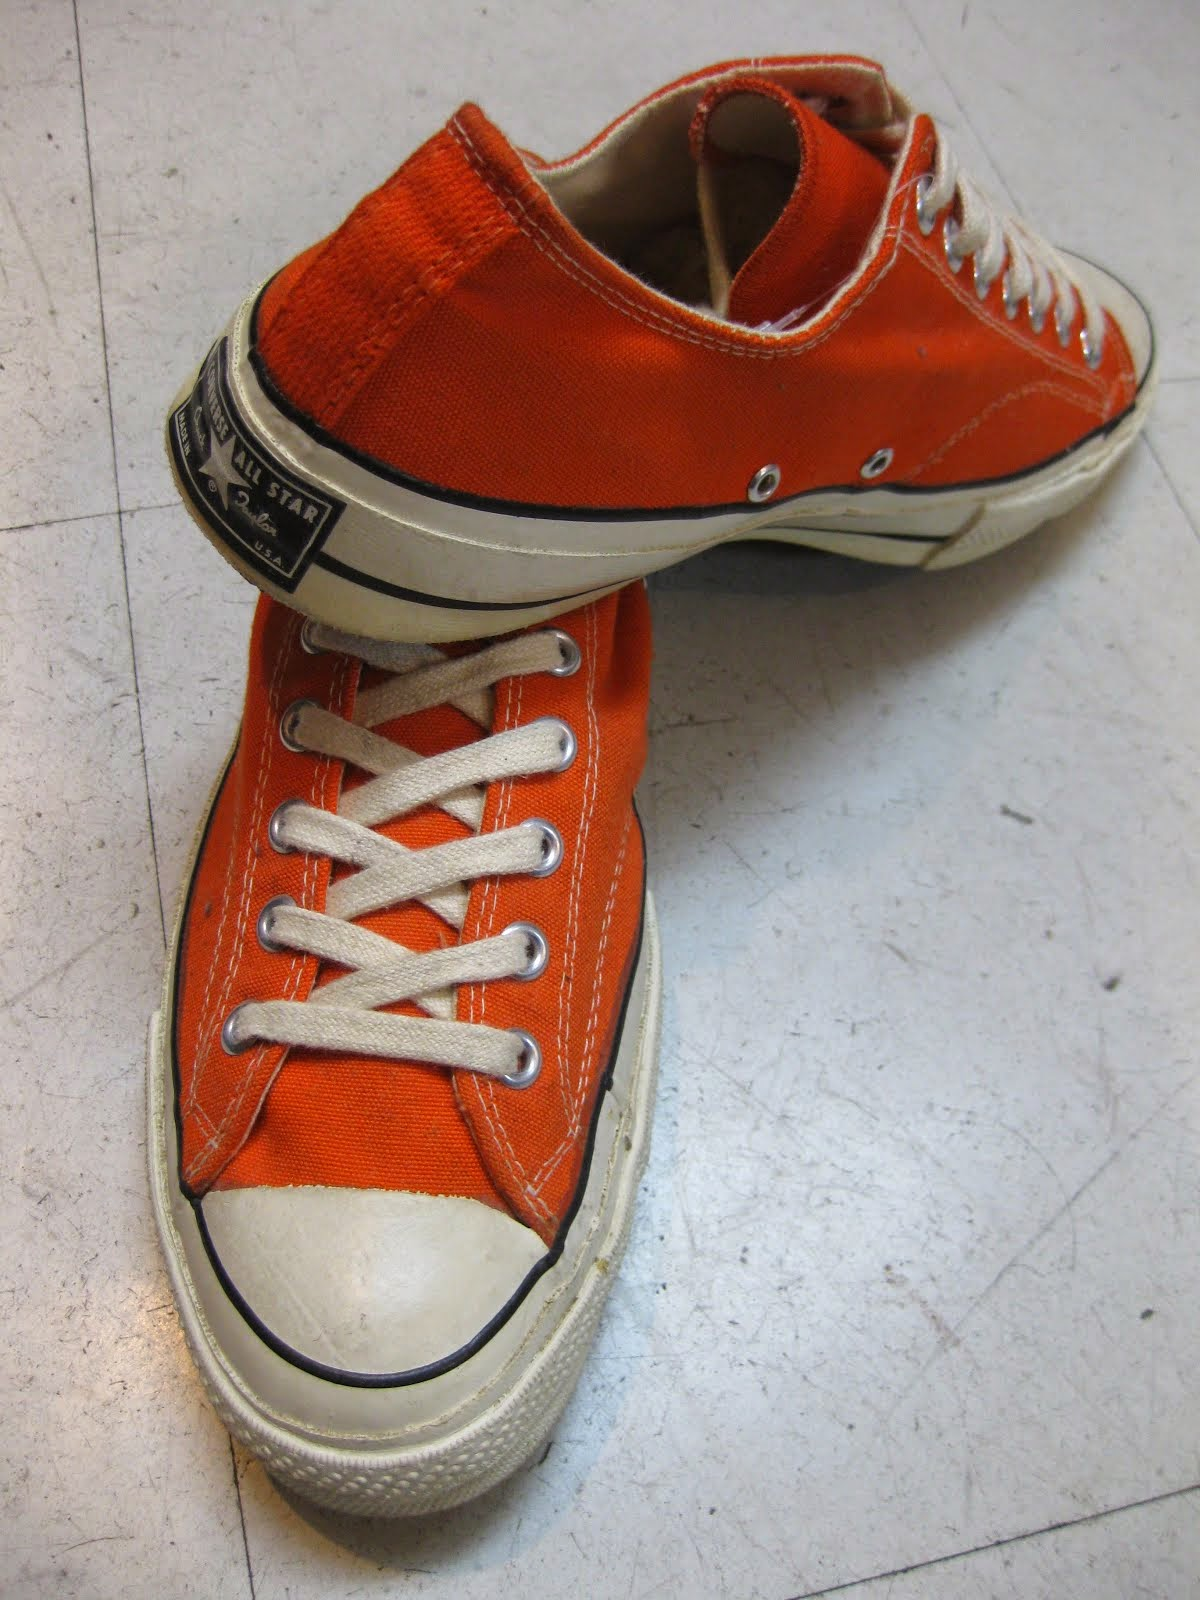 60's~70's CHUCK TALOR LO.  ORANGE                MINT コンディション